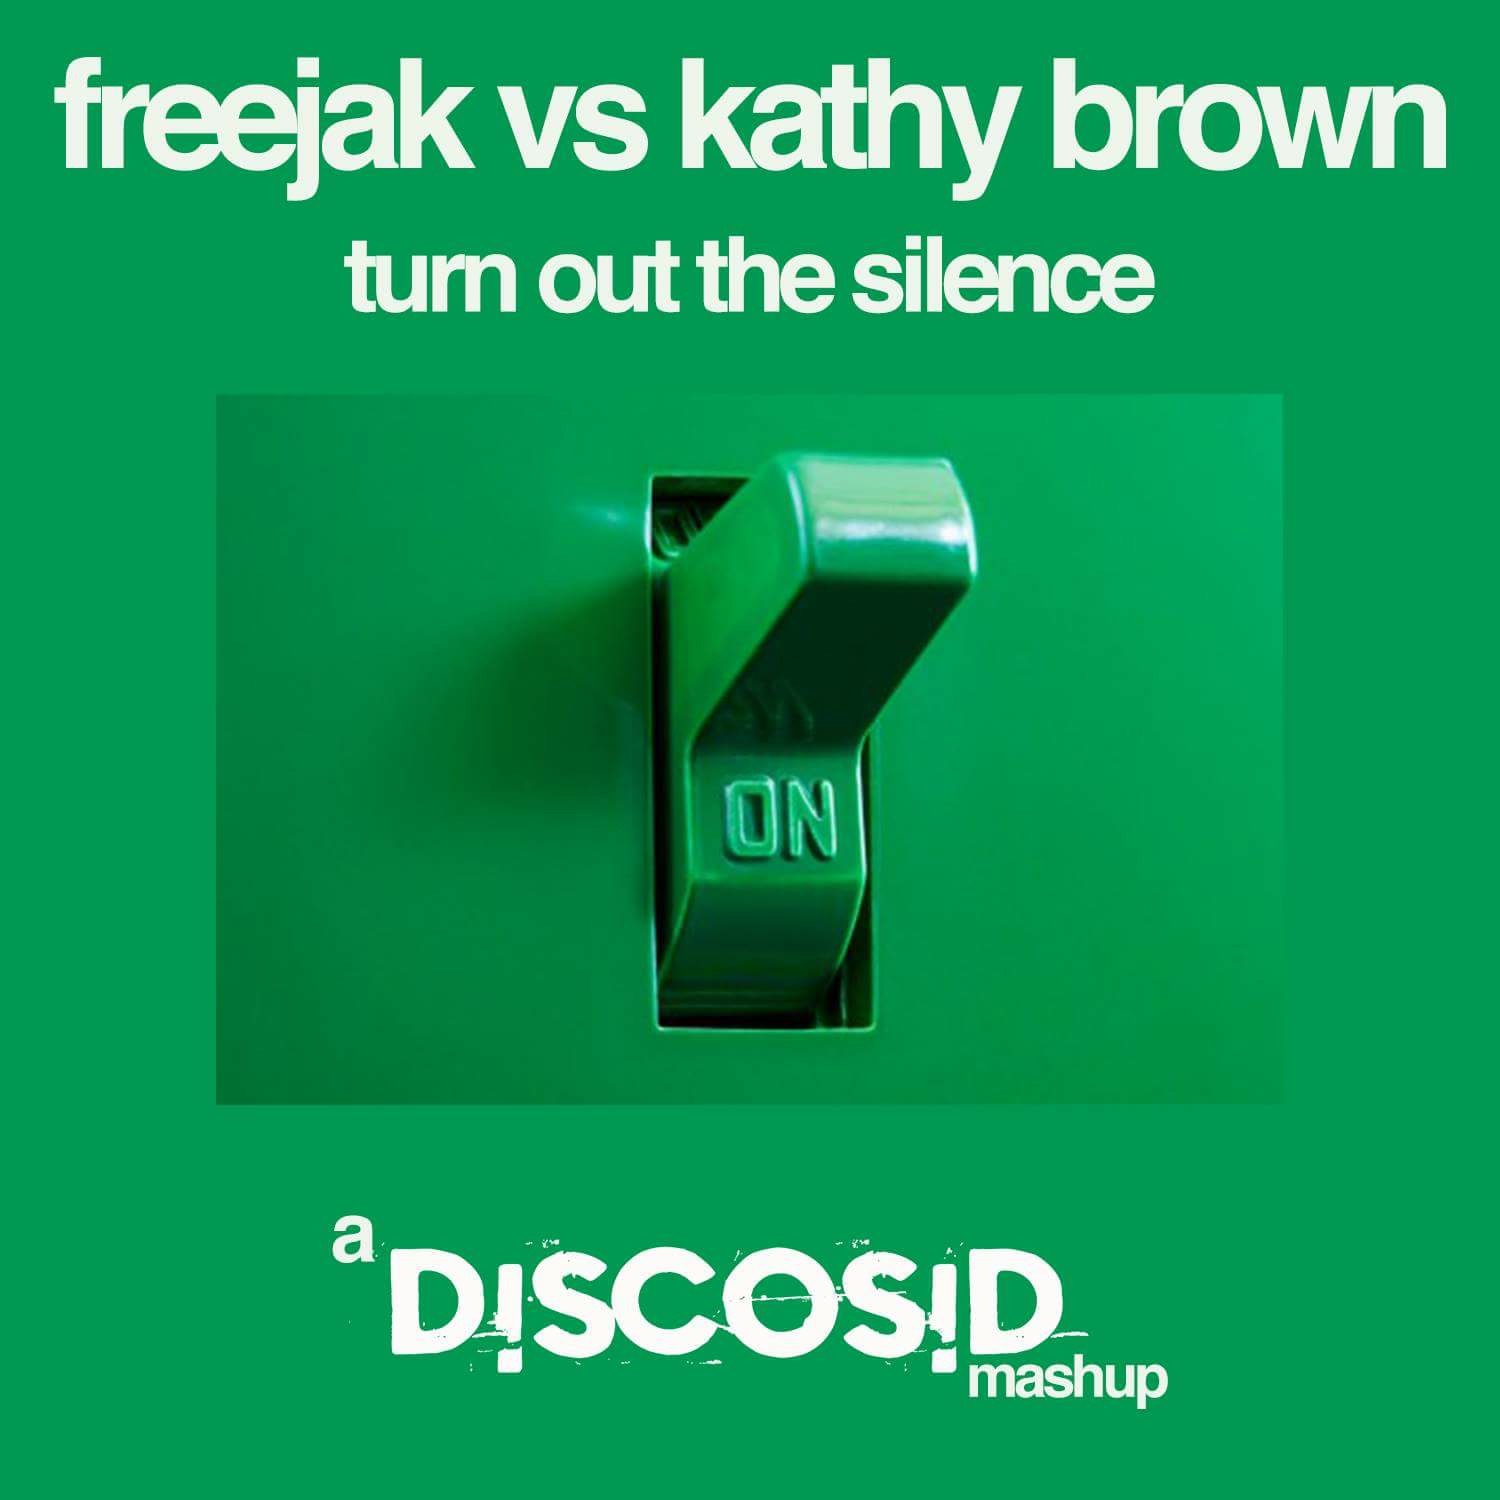 Freejak Vs Kathy Brown - Turn Out The Silence (Discosid Mashup)